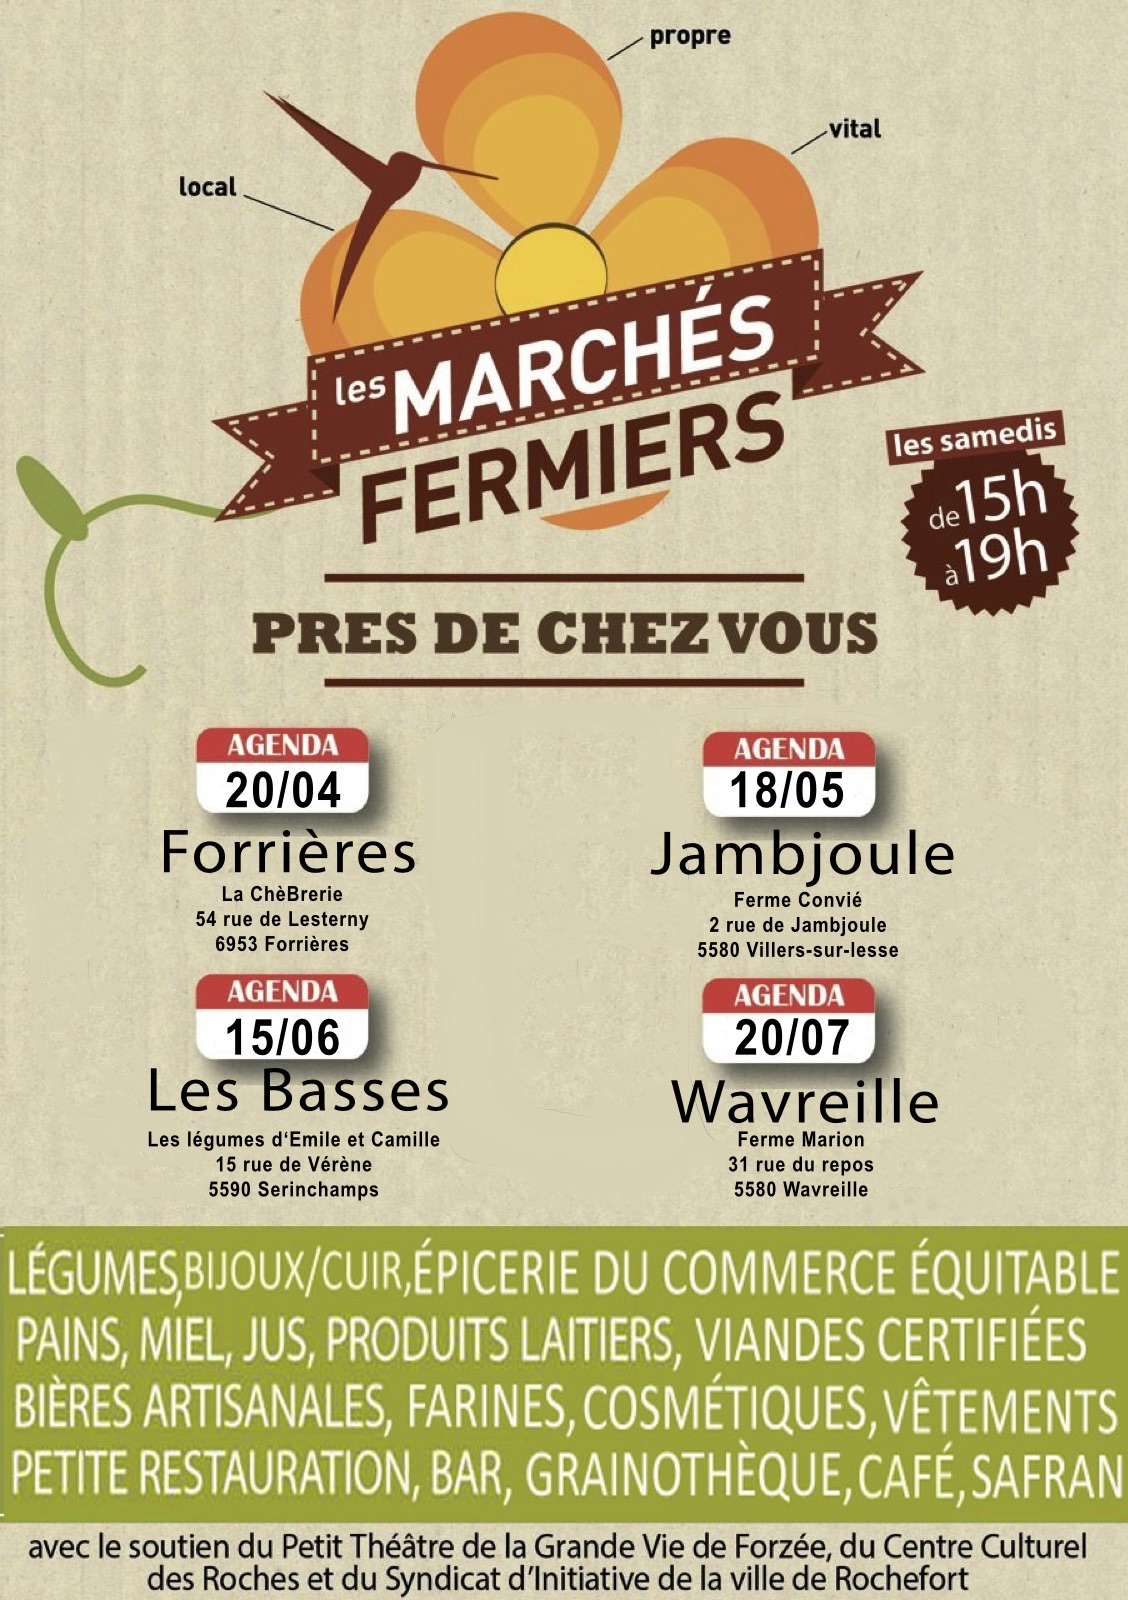 image marches_fermiers_multi_4_dates.jpg (0.5MB)